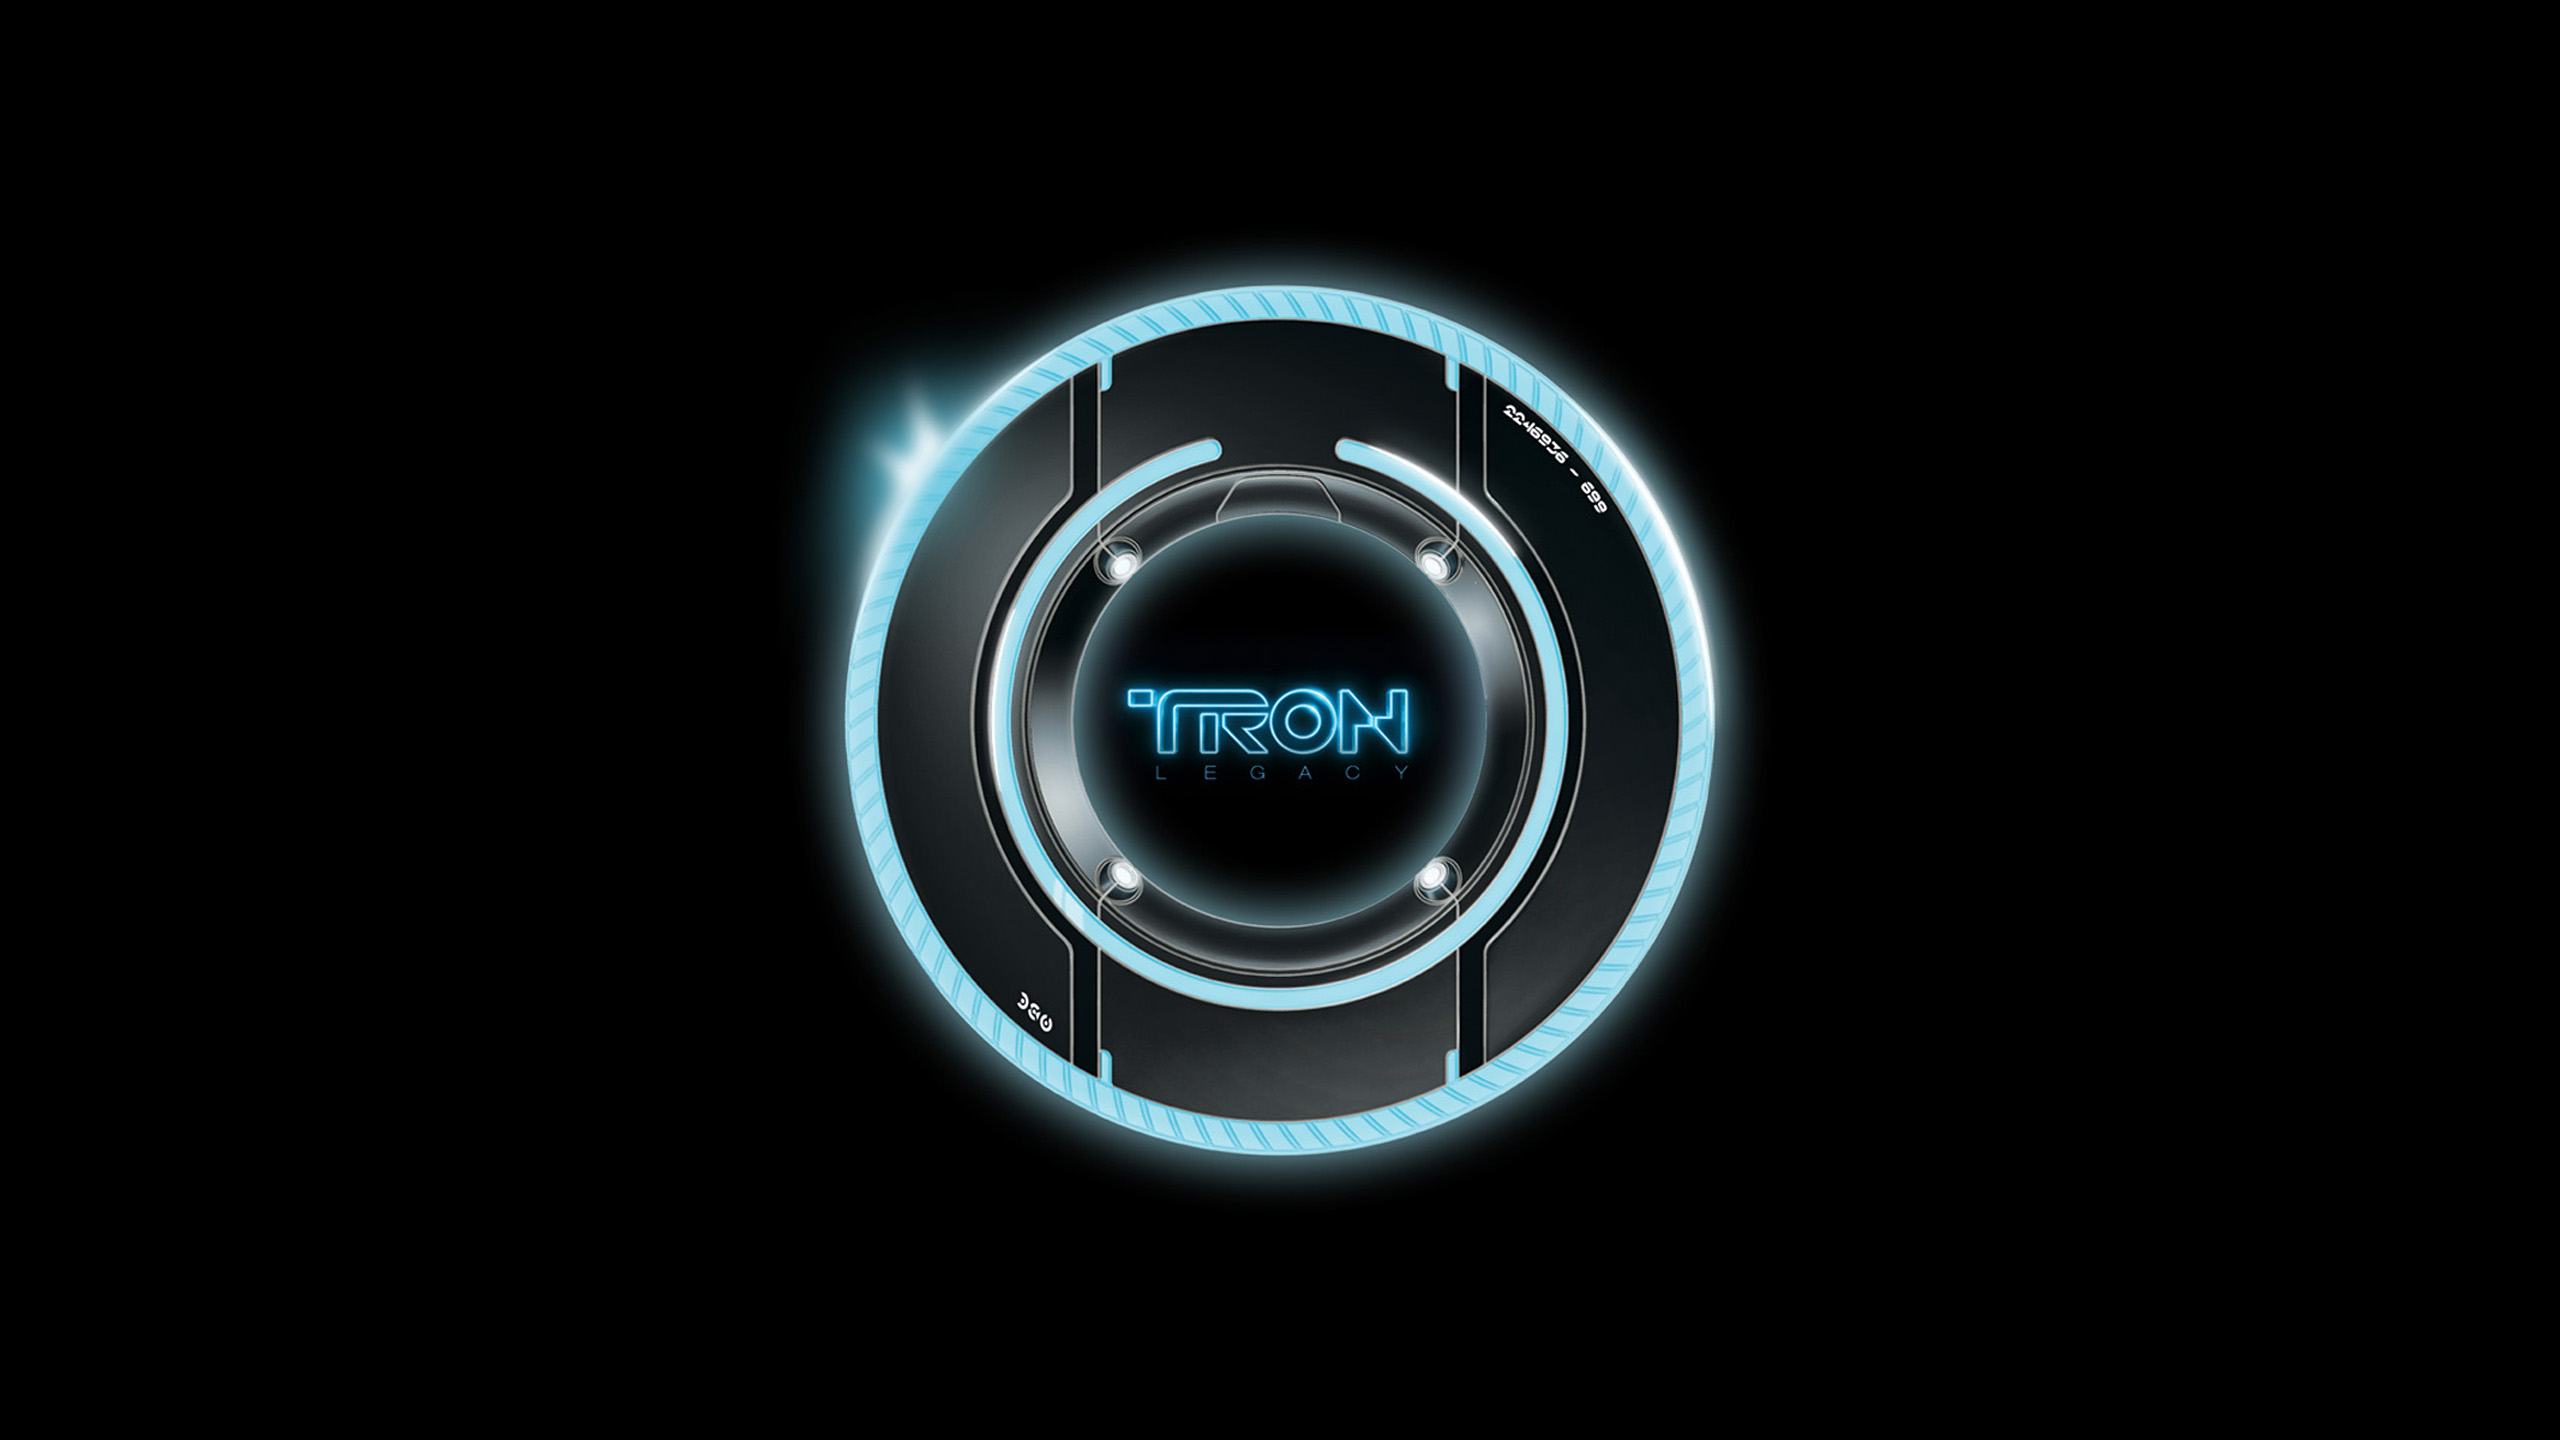 Vancouver Canucks Wallpaper Hd Over 80 Tron Legacy Original And Concept Wallpapers 2560